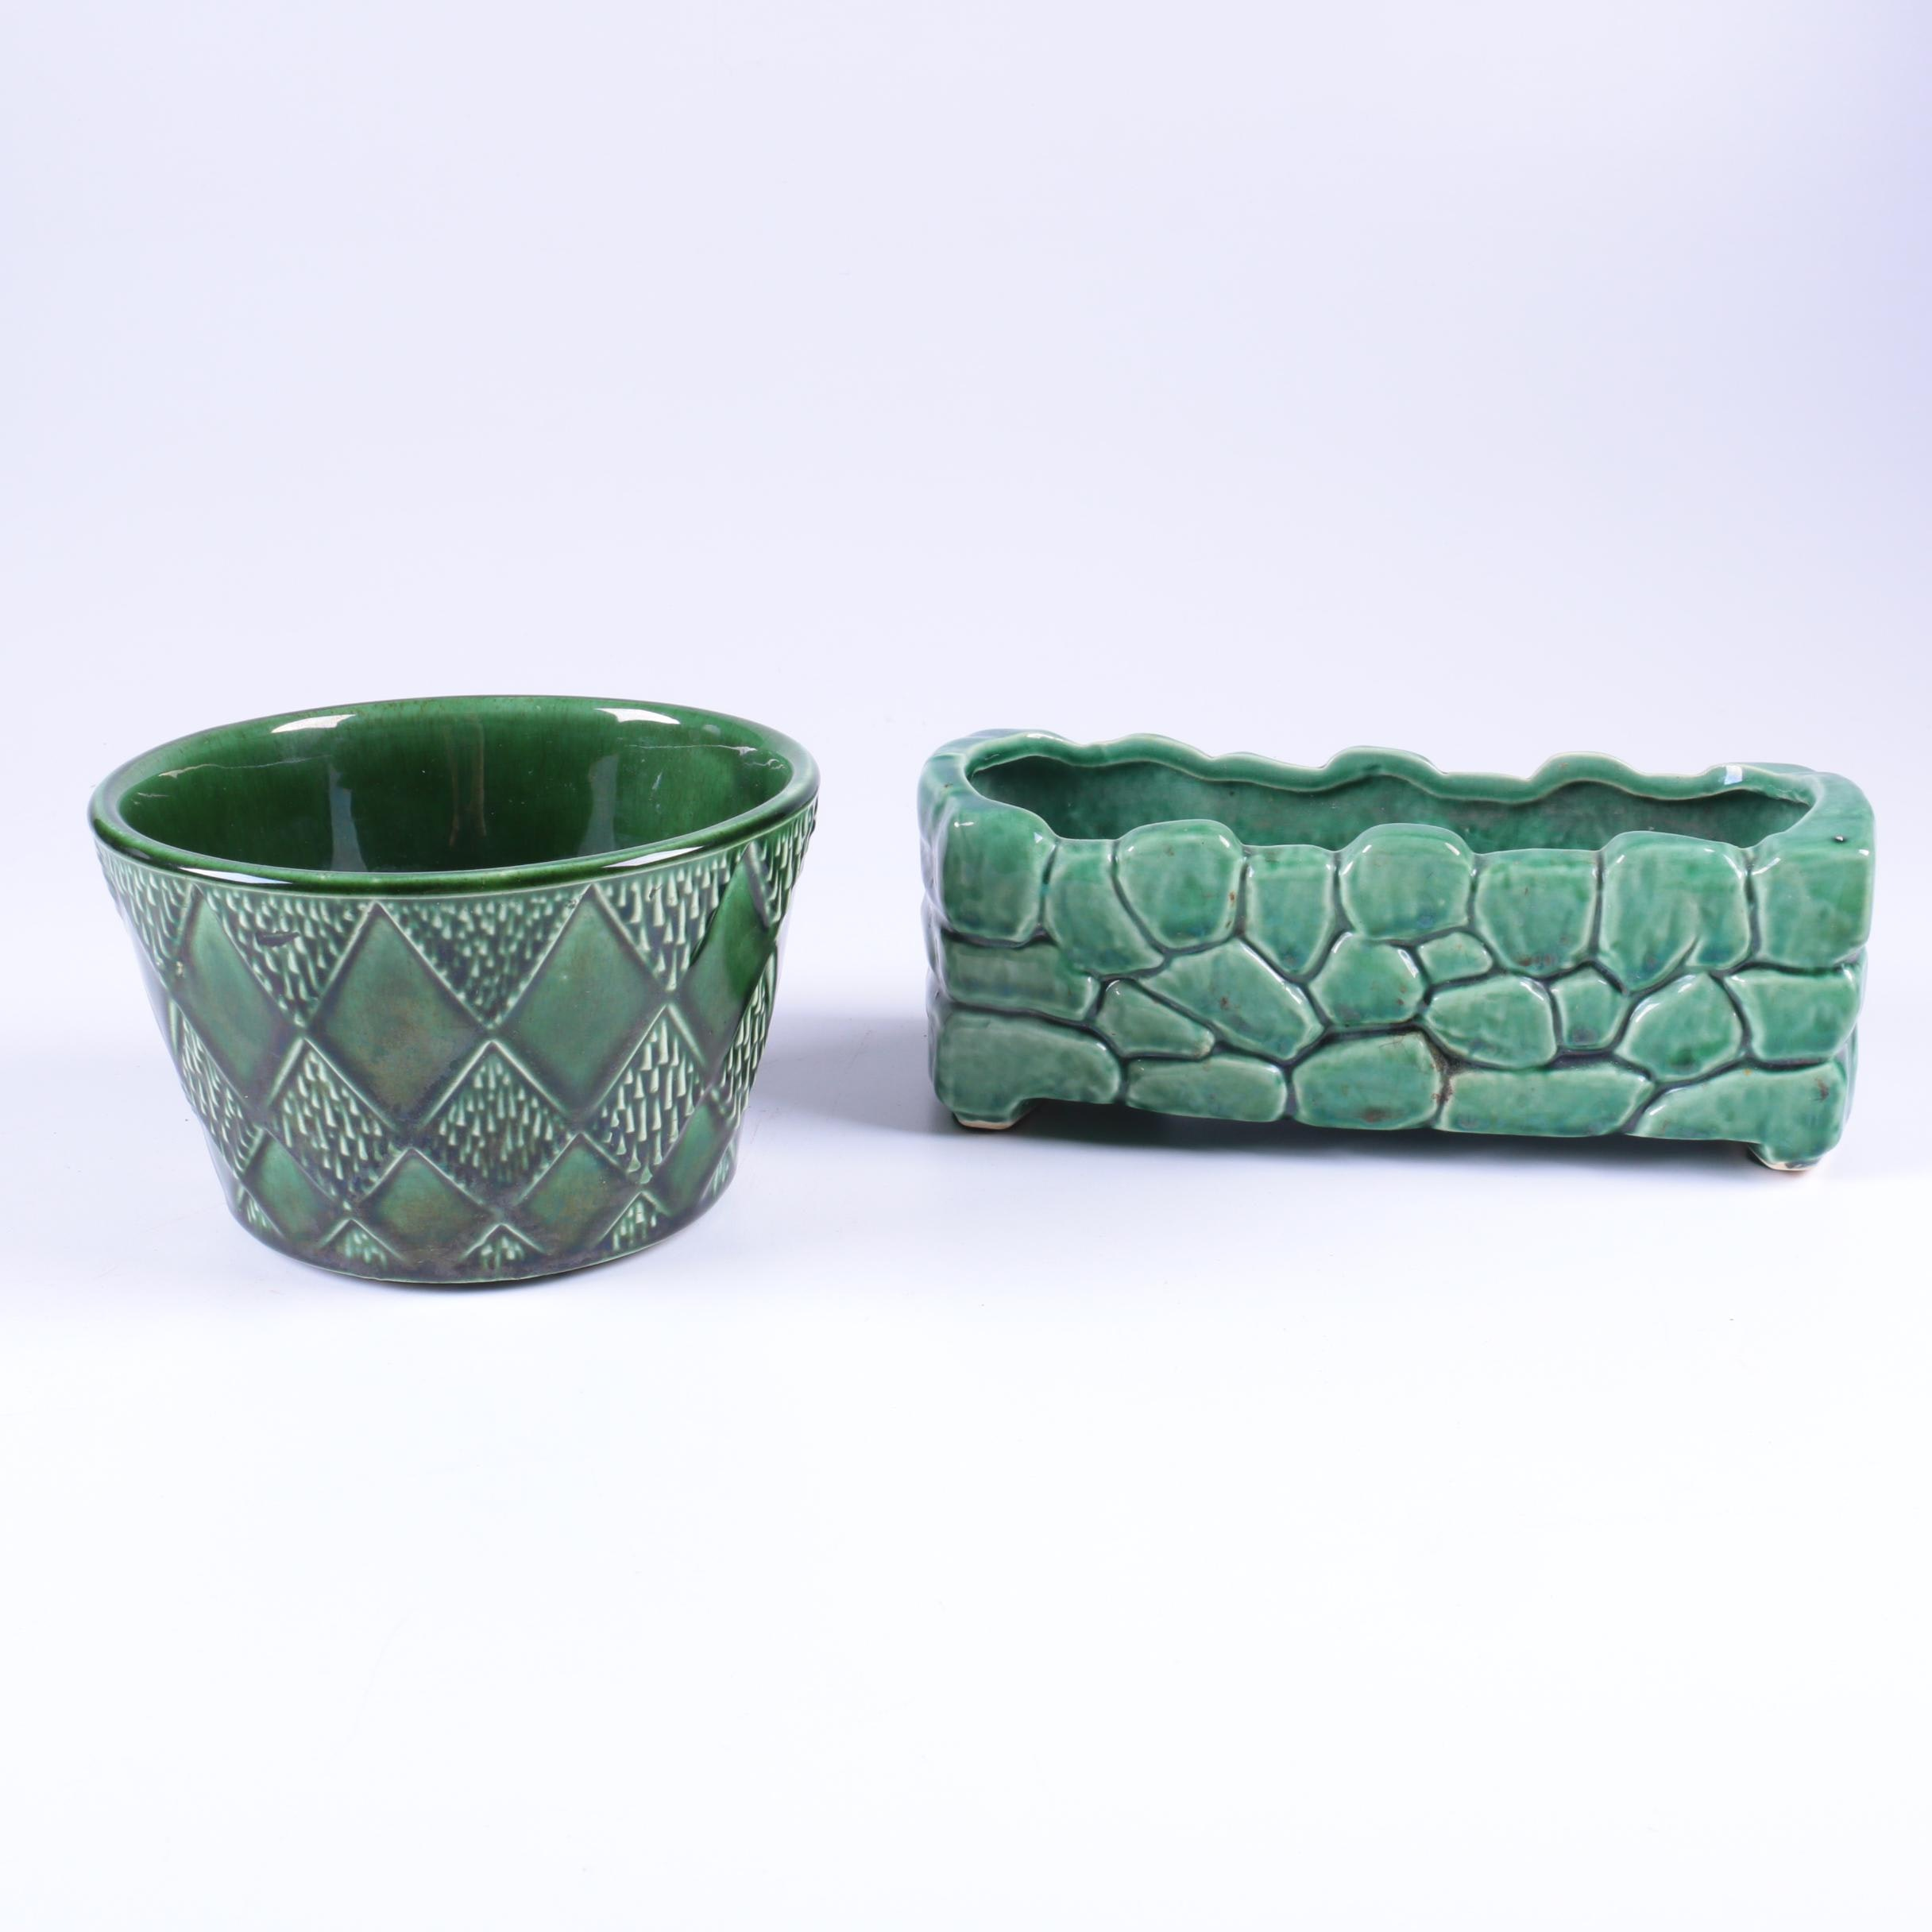 Pairing of McCoy Green Glazed Planters